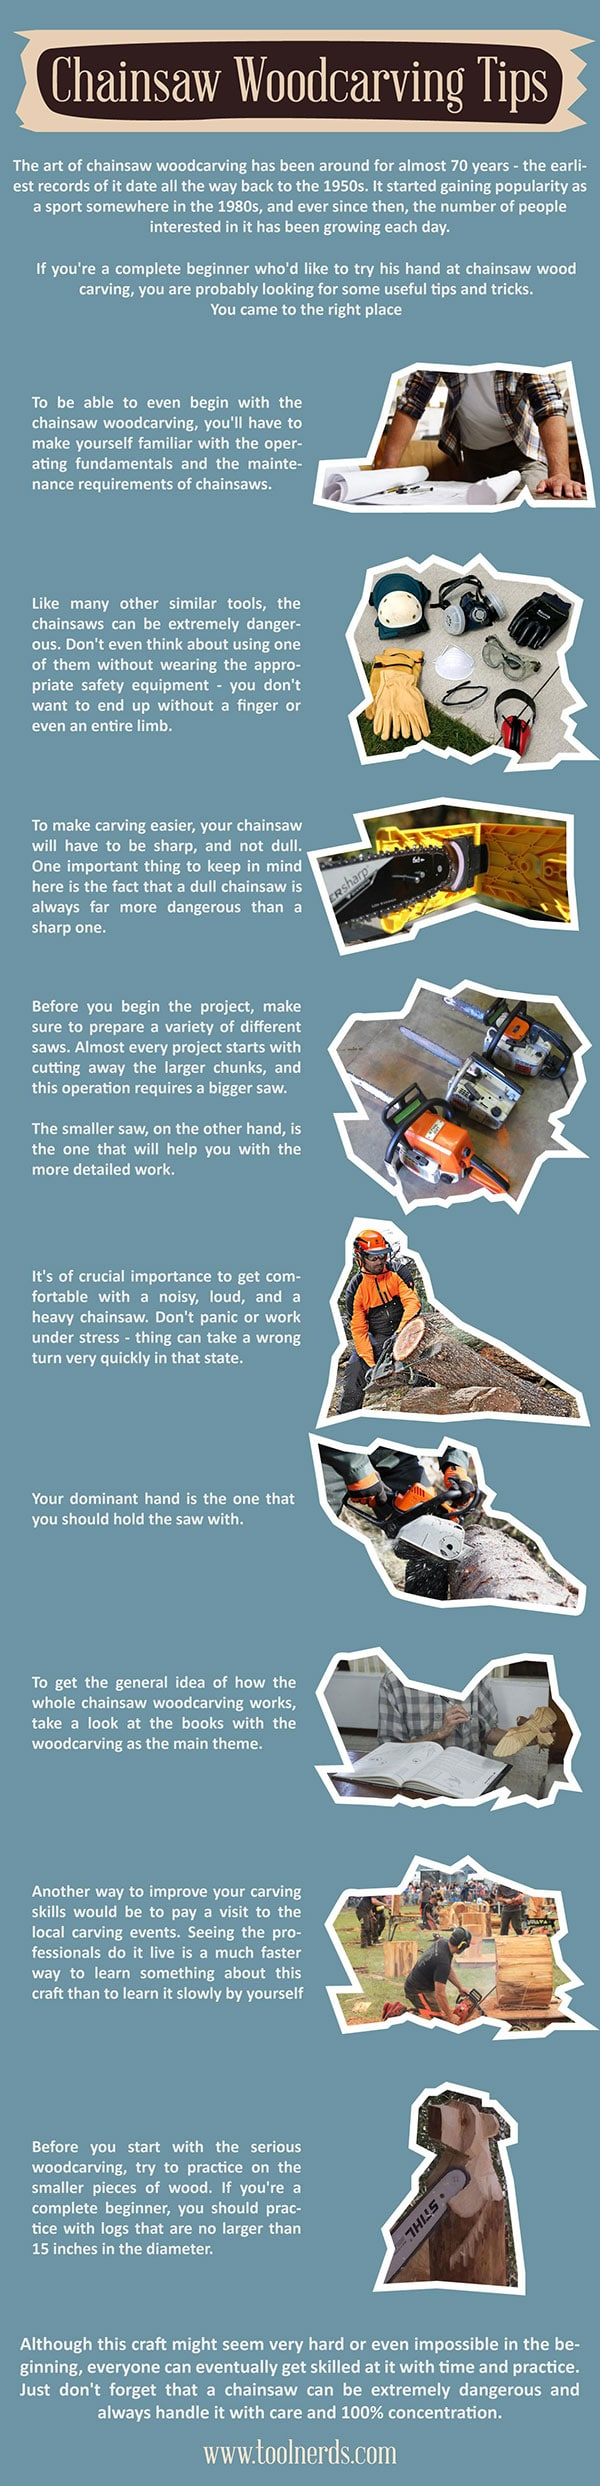 Chainsaw Woodcarving Tips